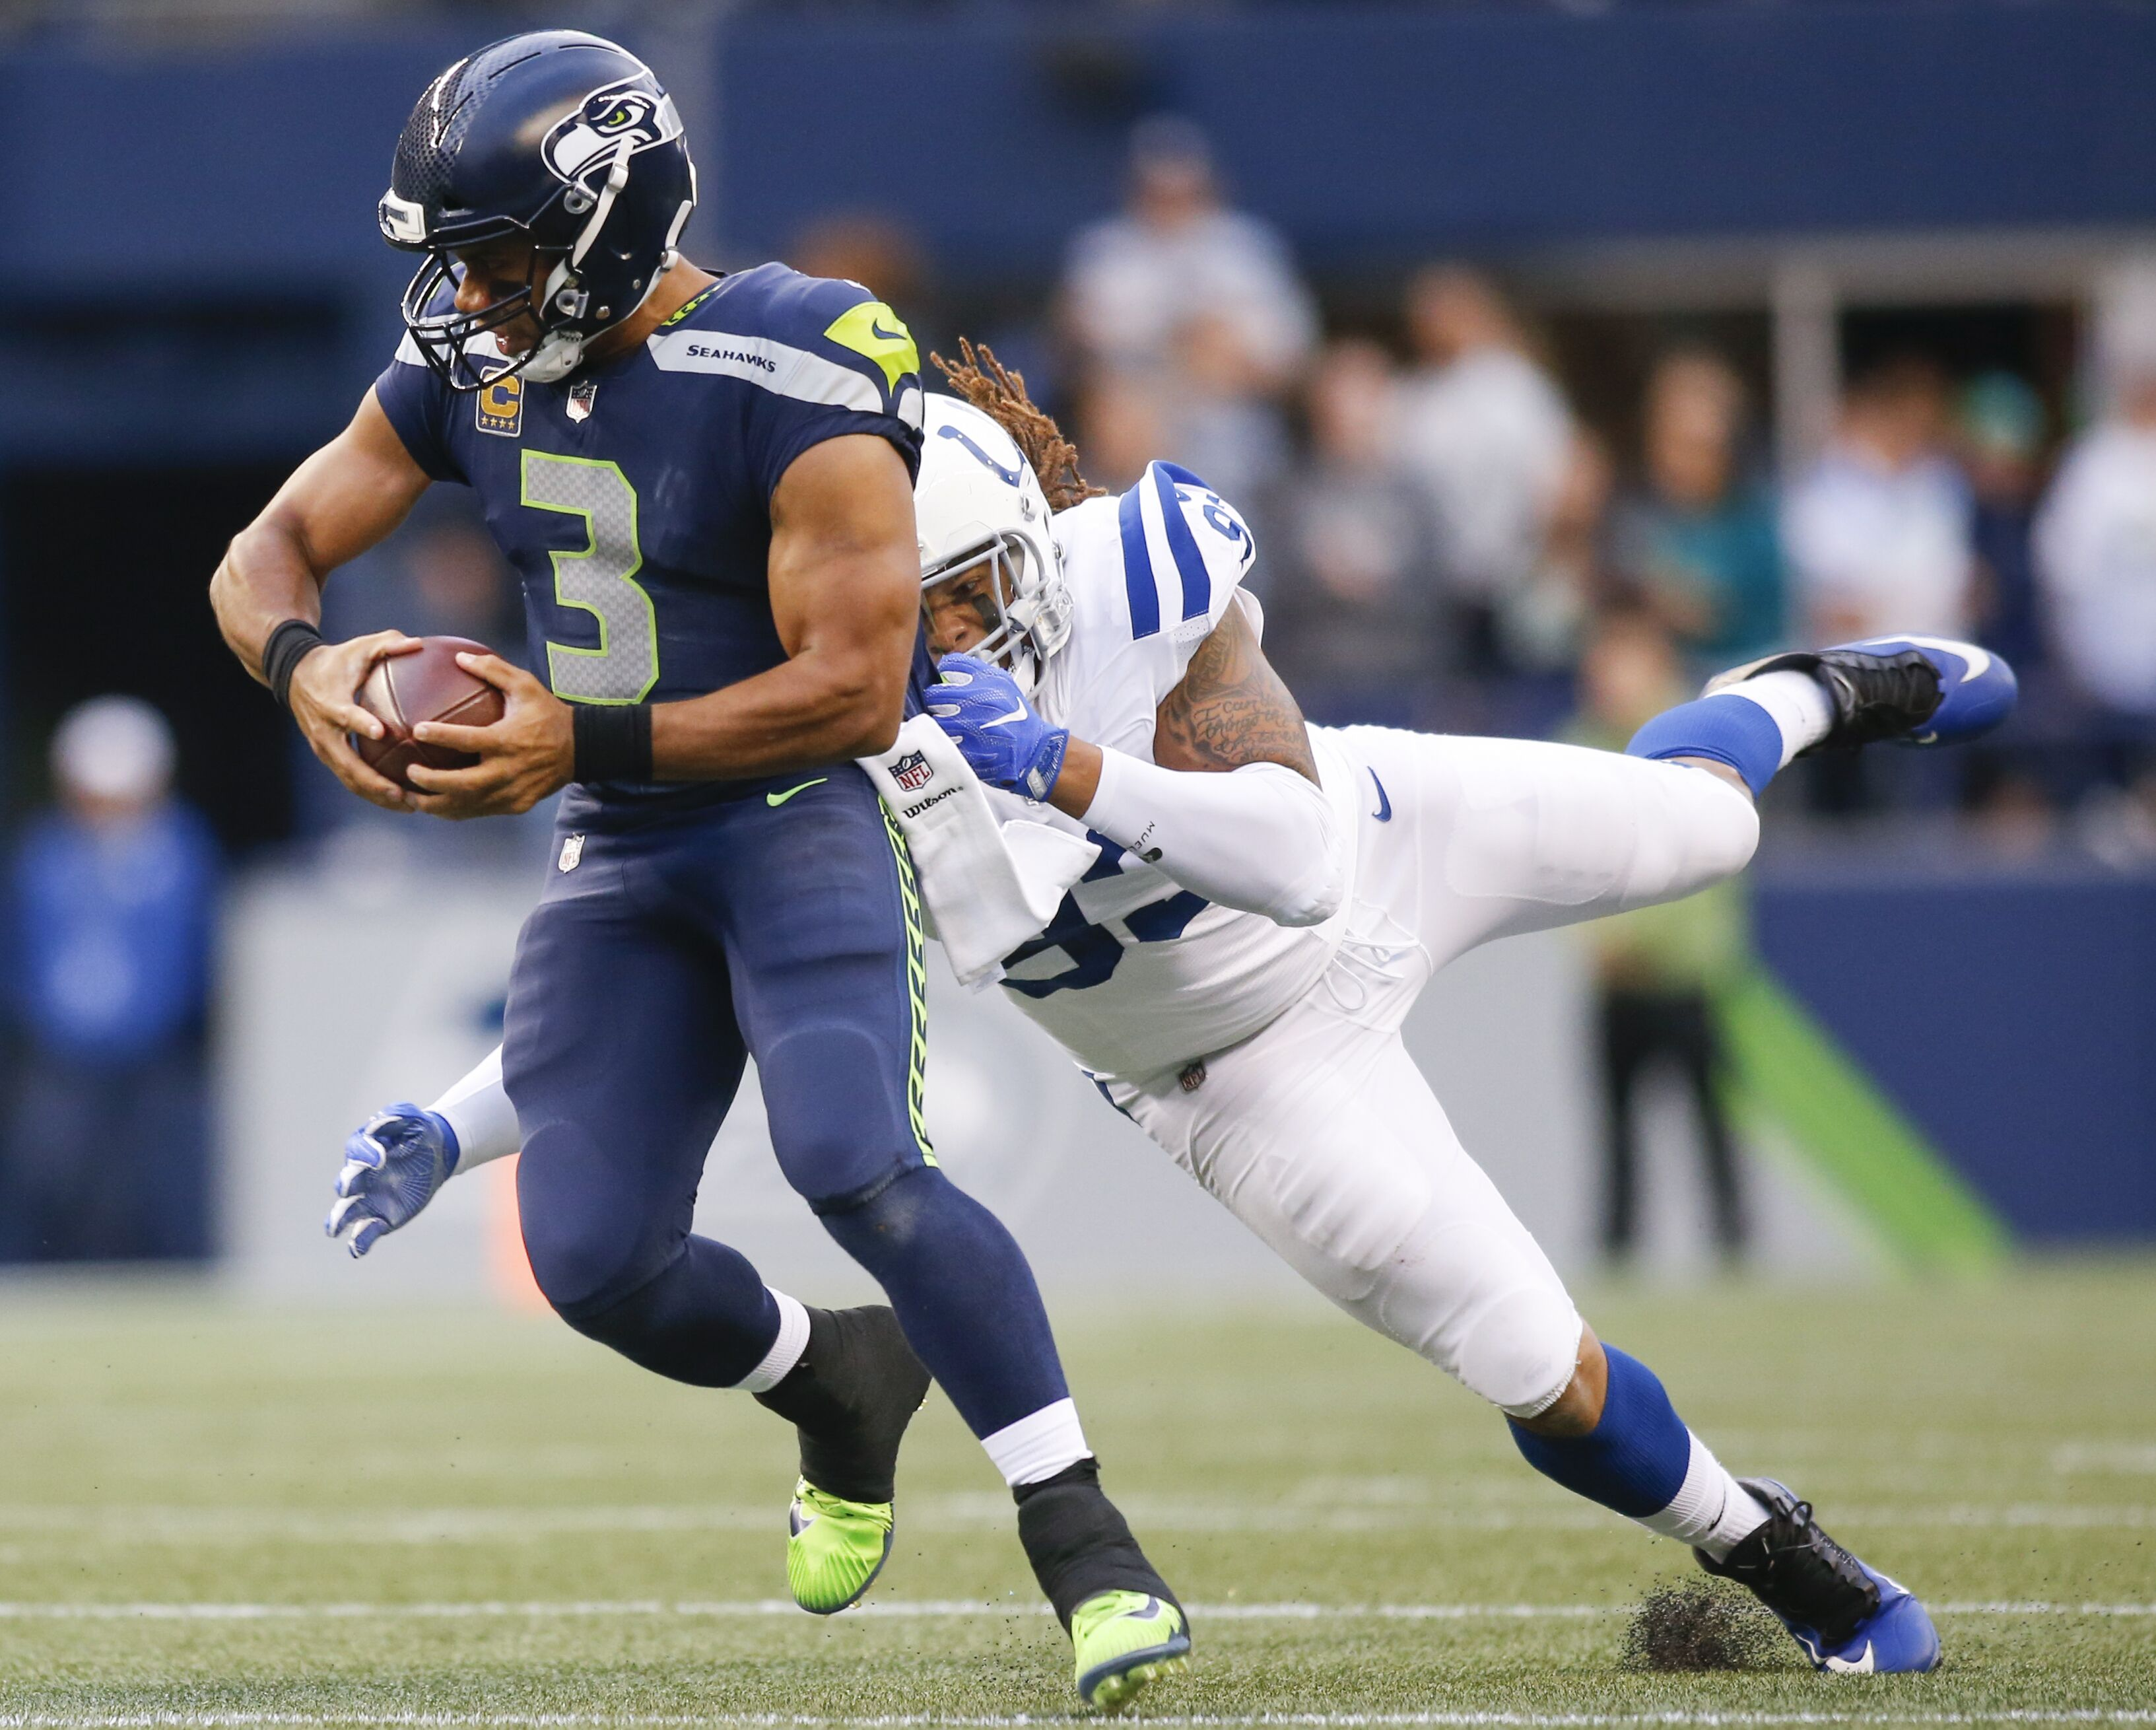 856450710-indianapolis-colts-v-seattle-seahawks.jpg